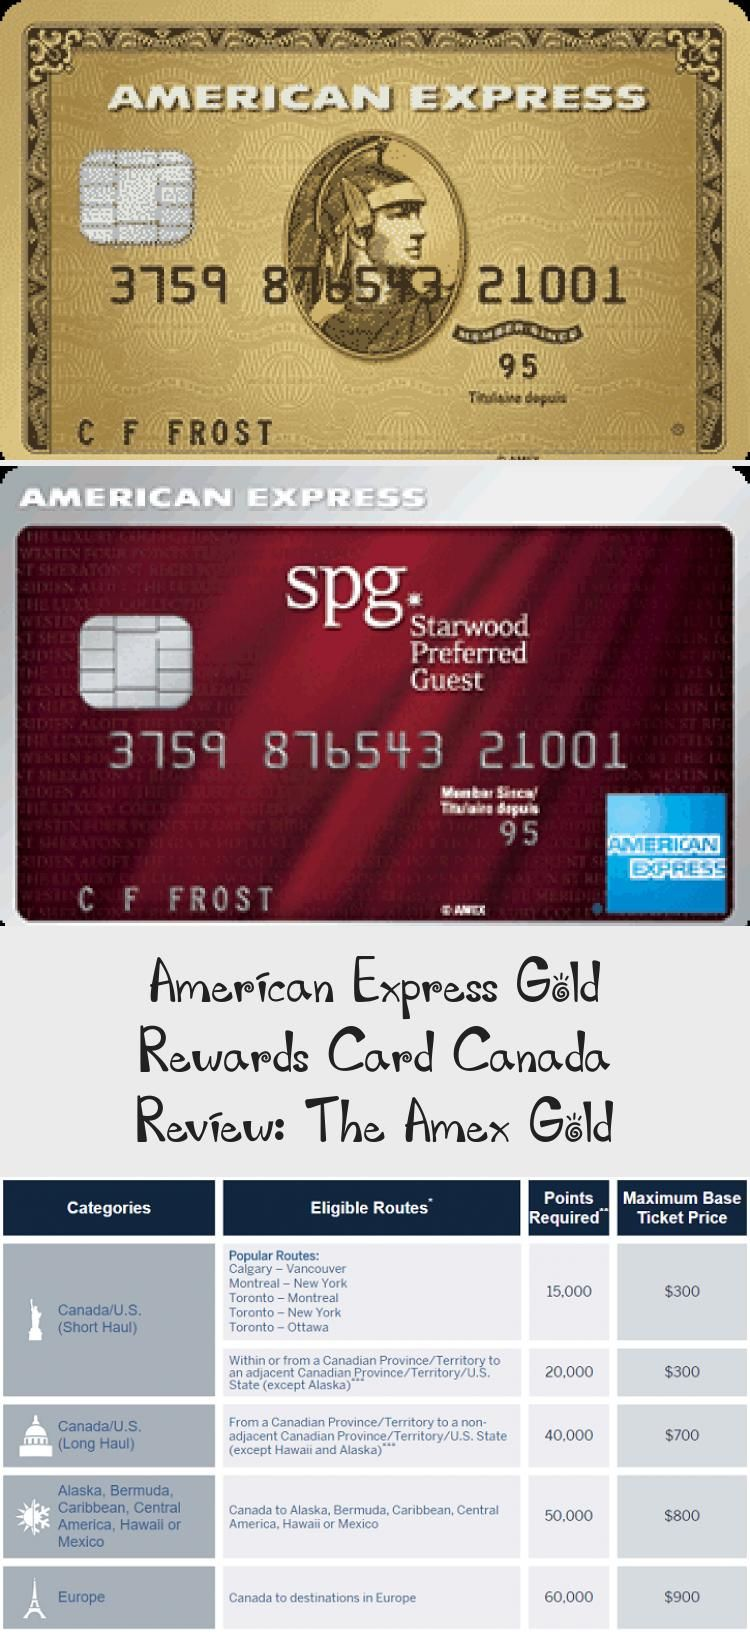 American Express Gold Rewards Card Canada Review The Amex Gold